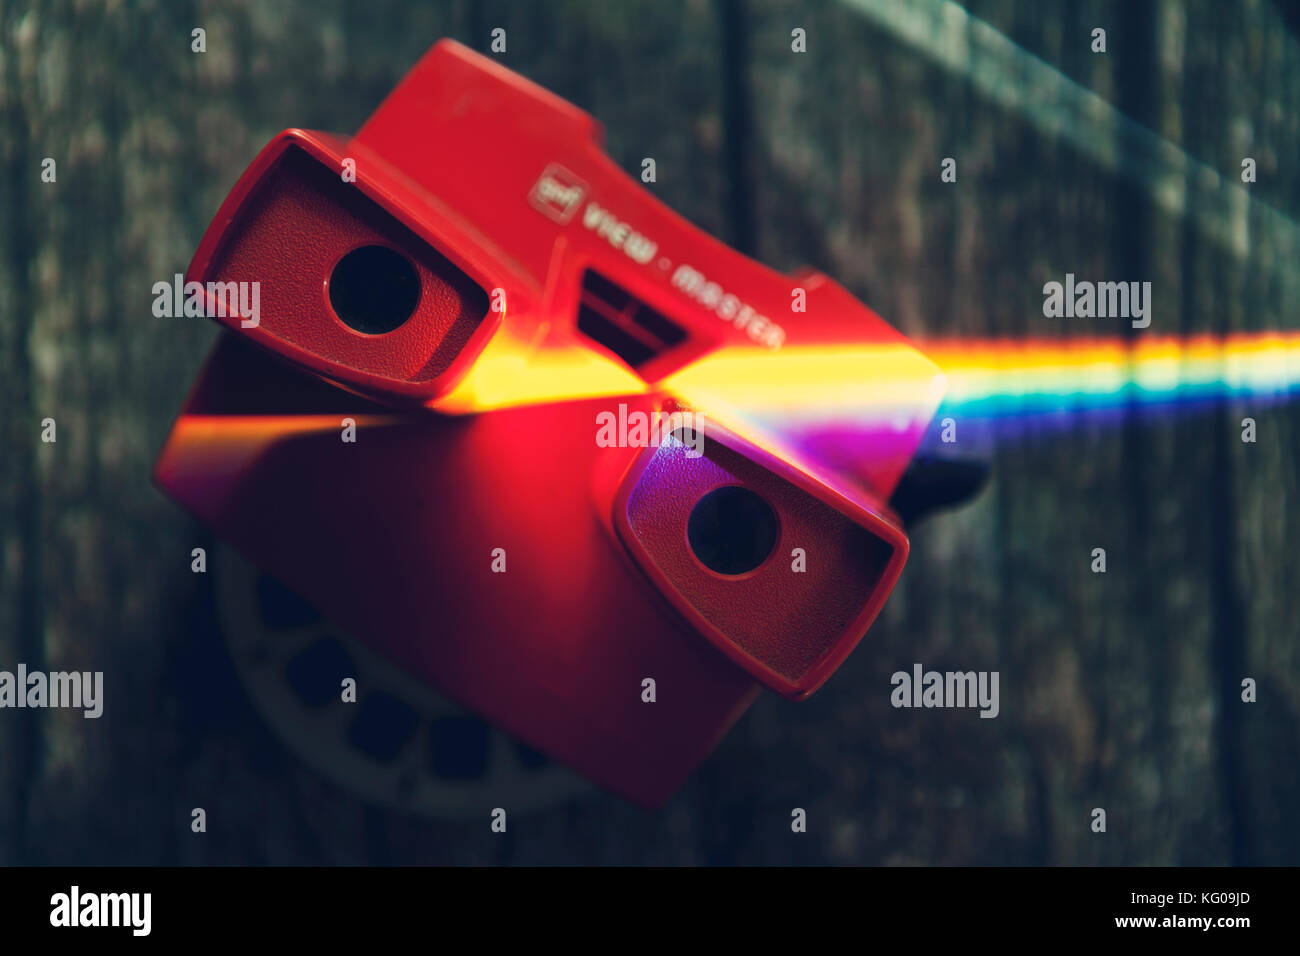 ray of spectrum light on view master - Stock Image